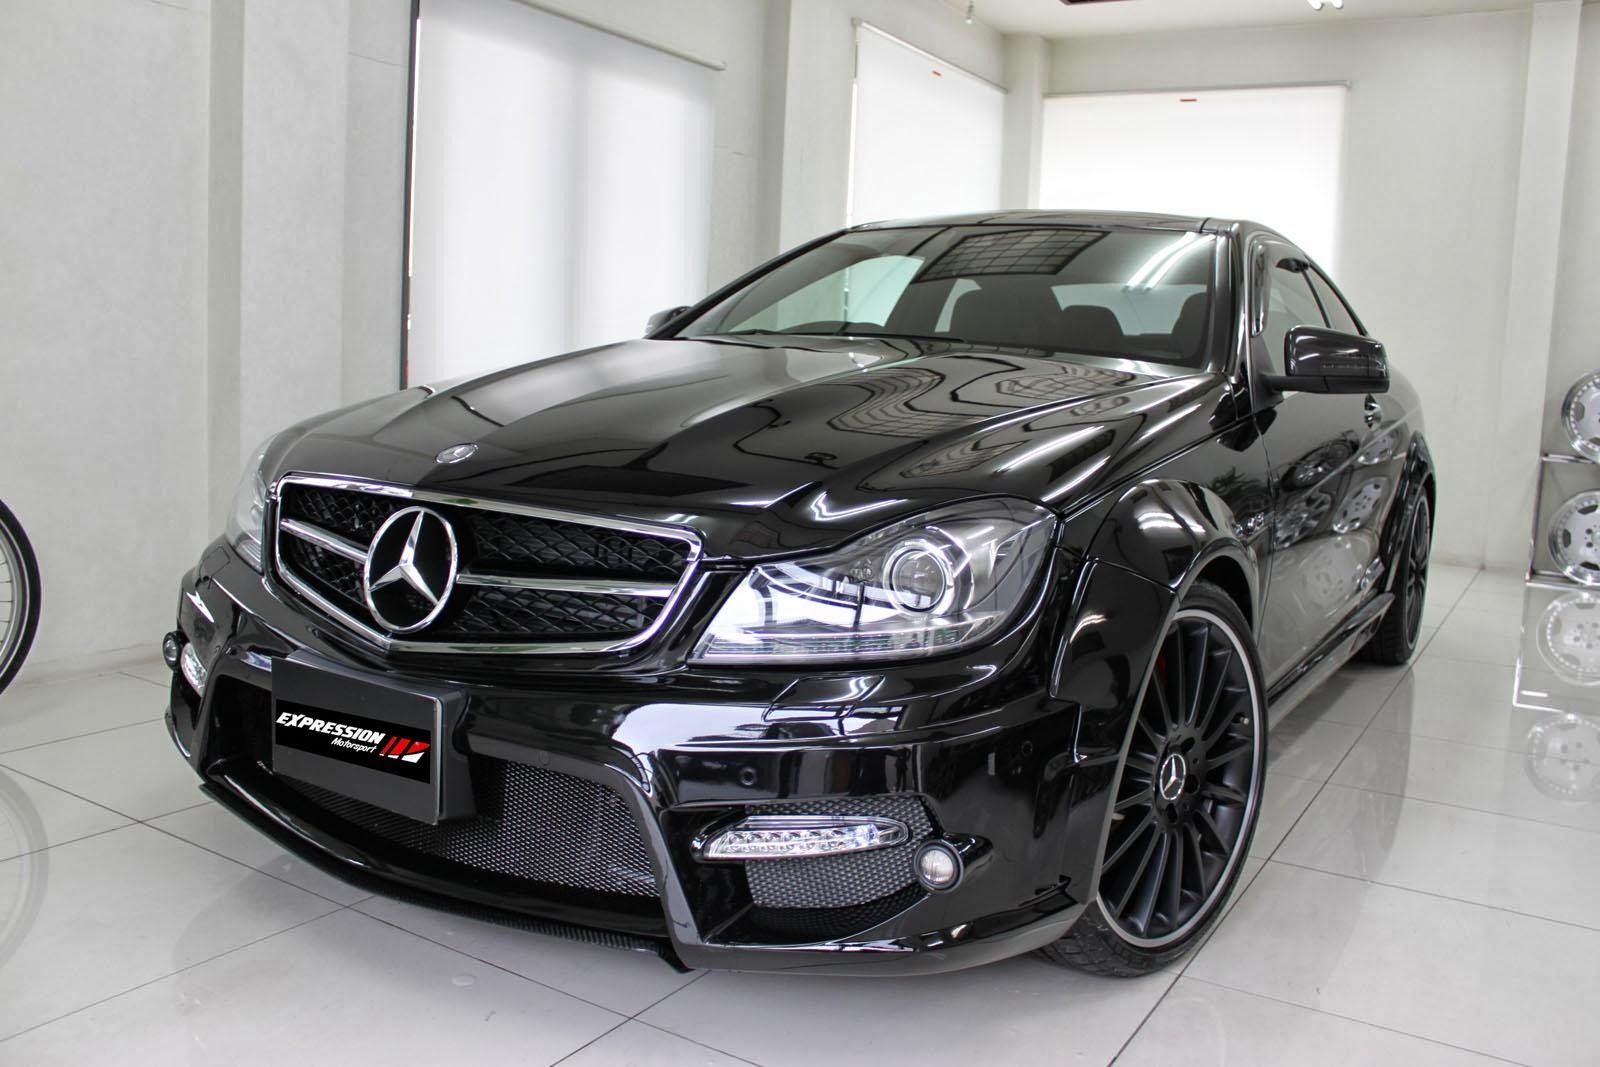 mercedes c class coupe sport 2014 wallpaper cars bikes. Black Bedroom Furniture Sets. Home Design Ideas